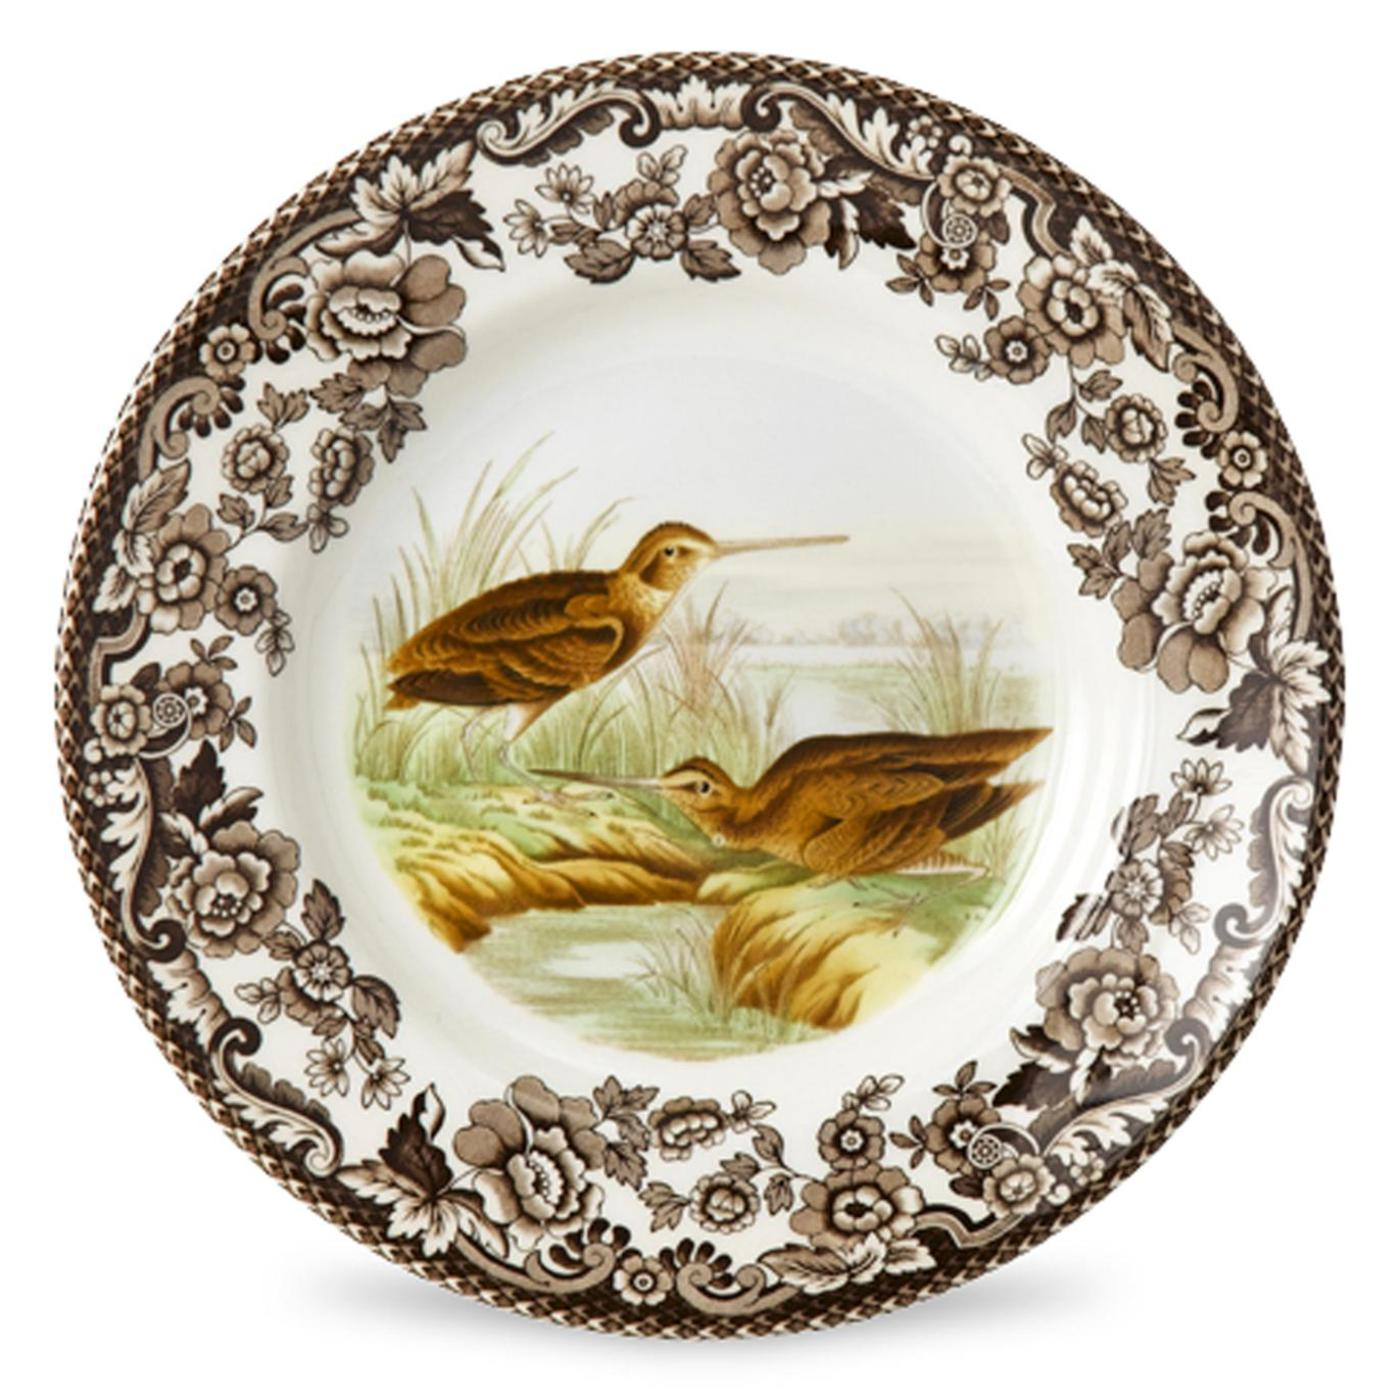 Spode Woodland Bread and Butter Plate 6 Inch (Snipe) image number 0